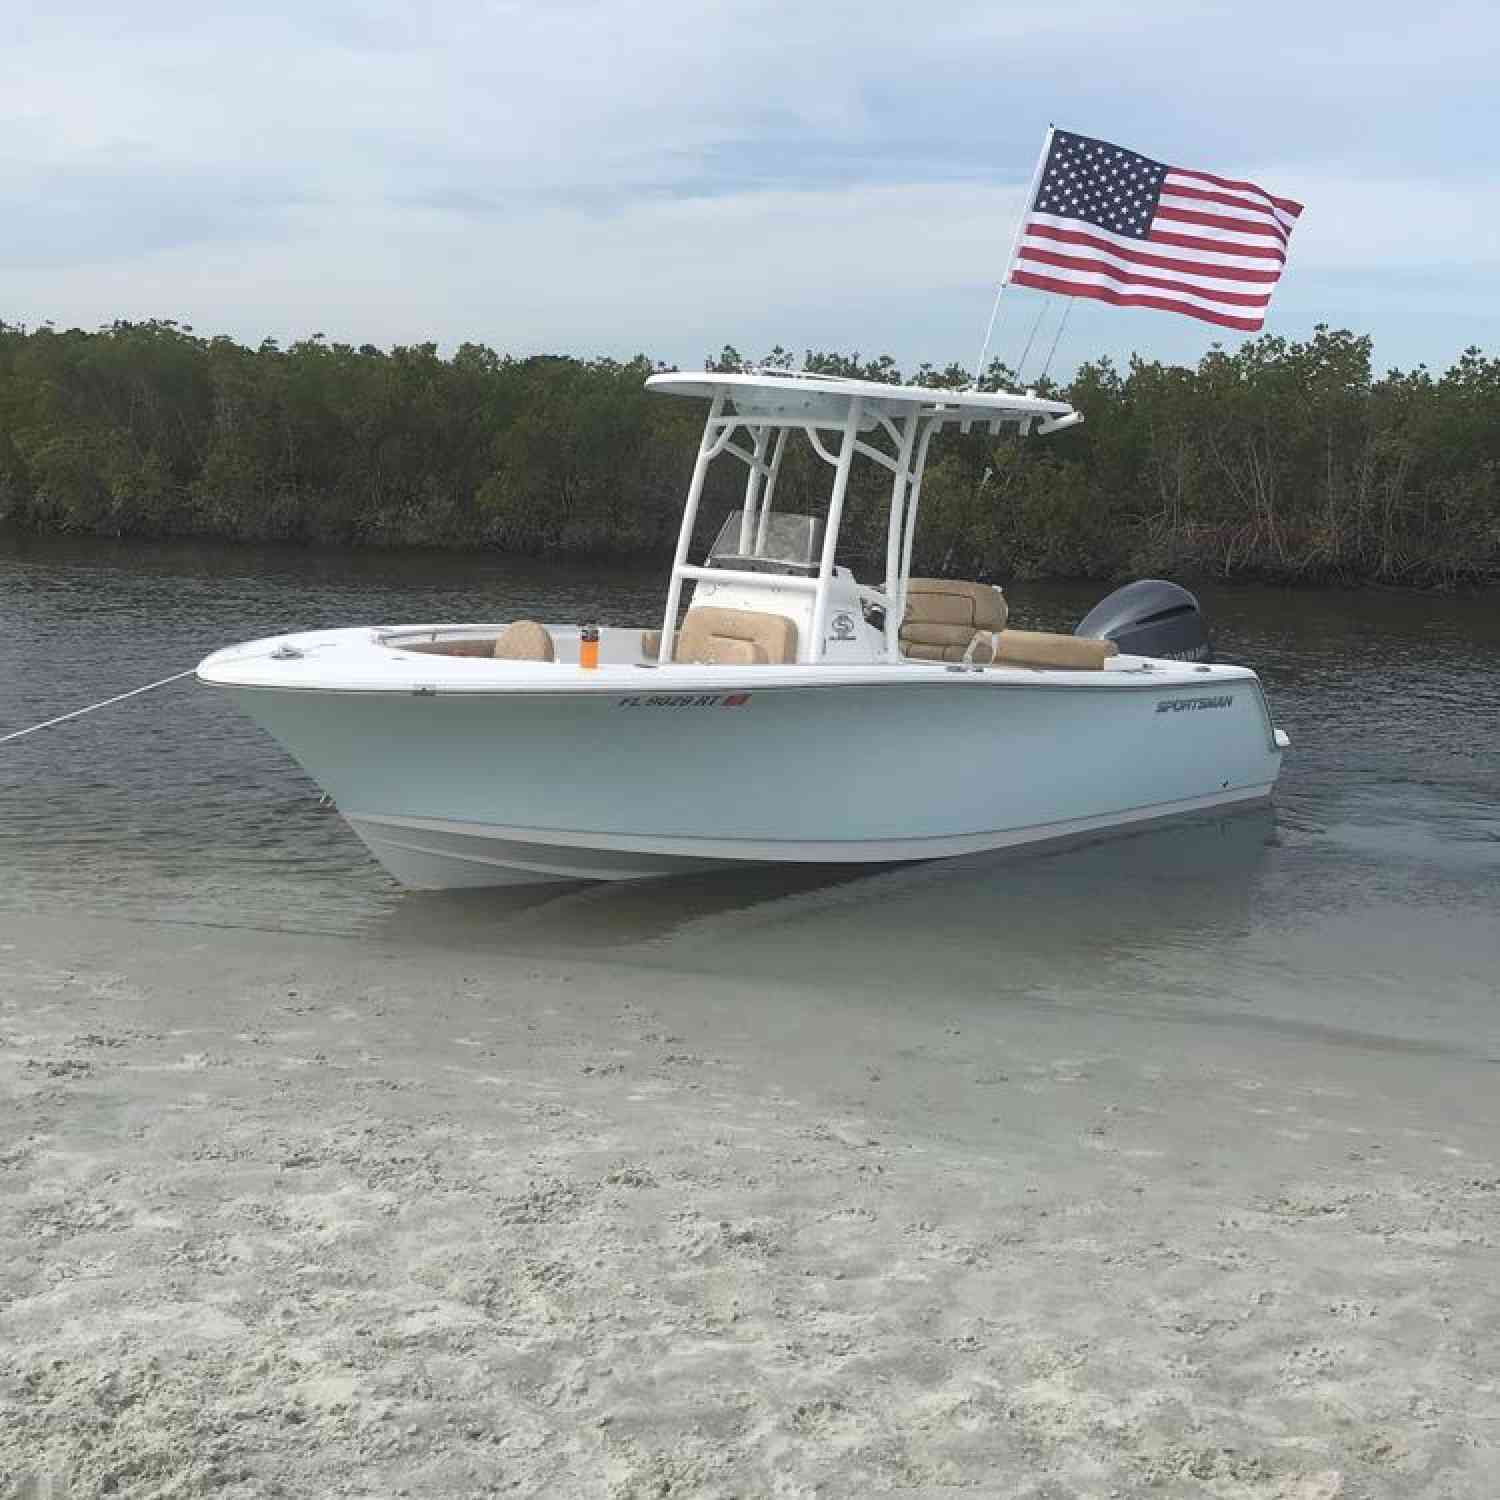 Title: Sportsman 232 - On board their Sportsman Open 232 Center Console - Location: Ponce Inlet florida. Participating in the Photo Contest #SportsmanFebruary2019